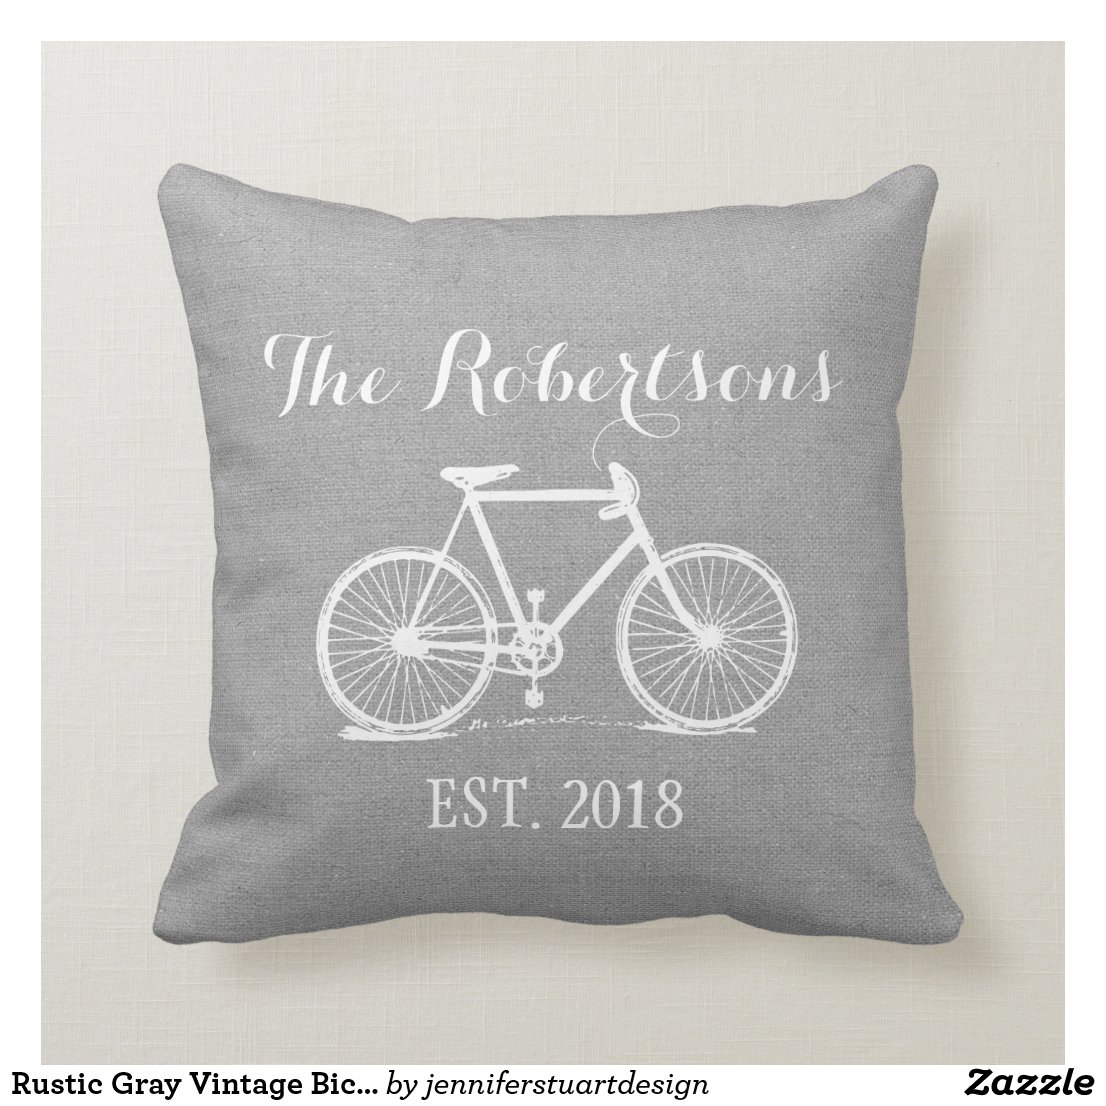 Rustic Grey Vintage Bicycle Wedding Monogram Cushion